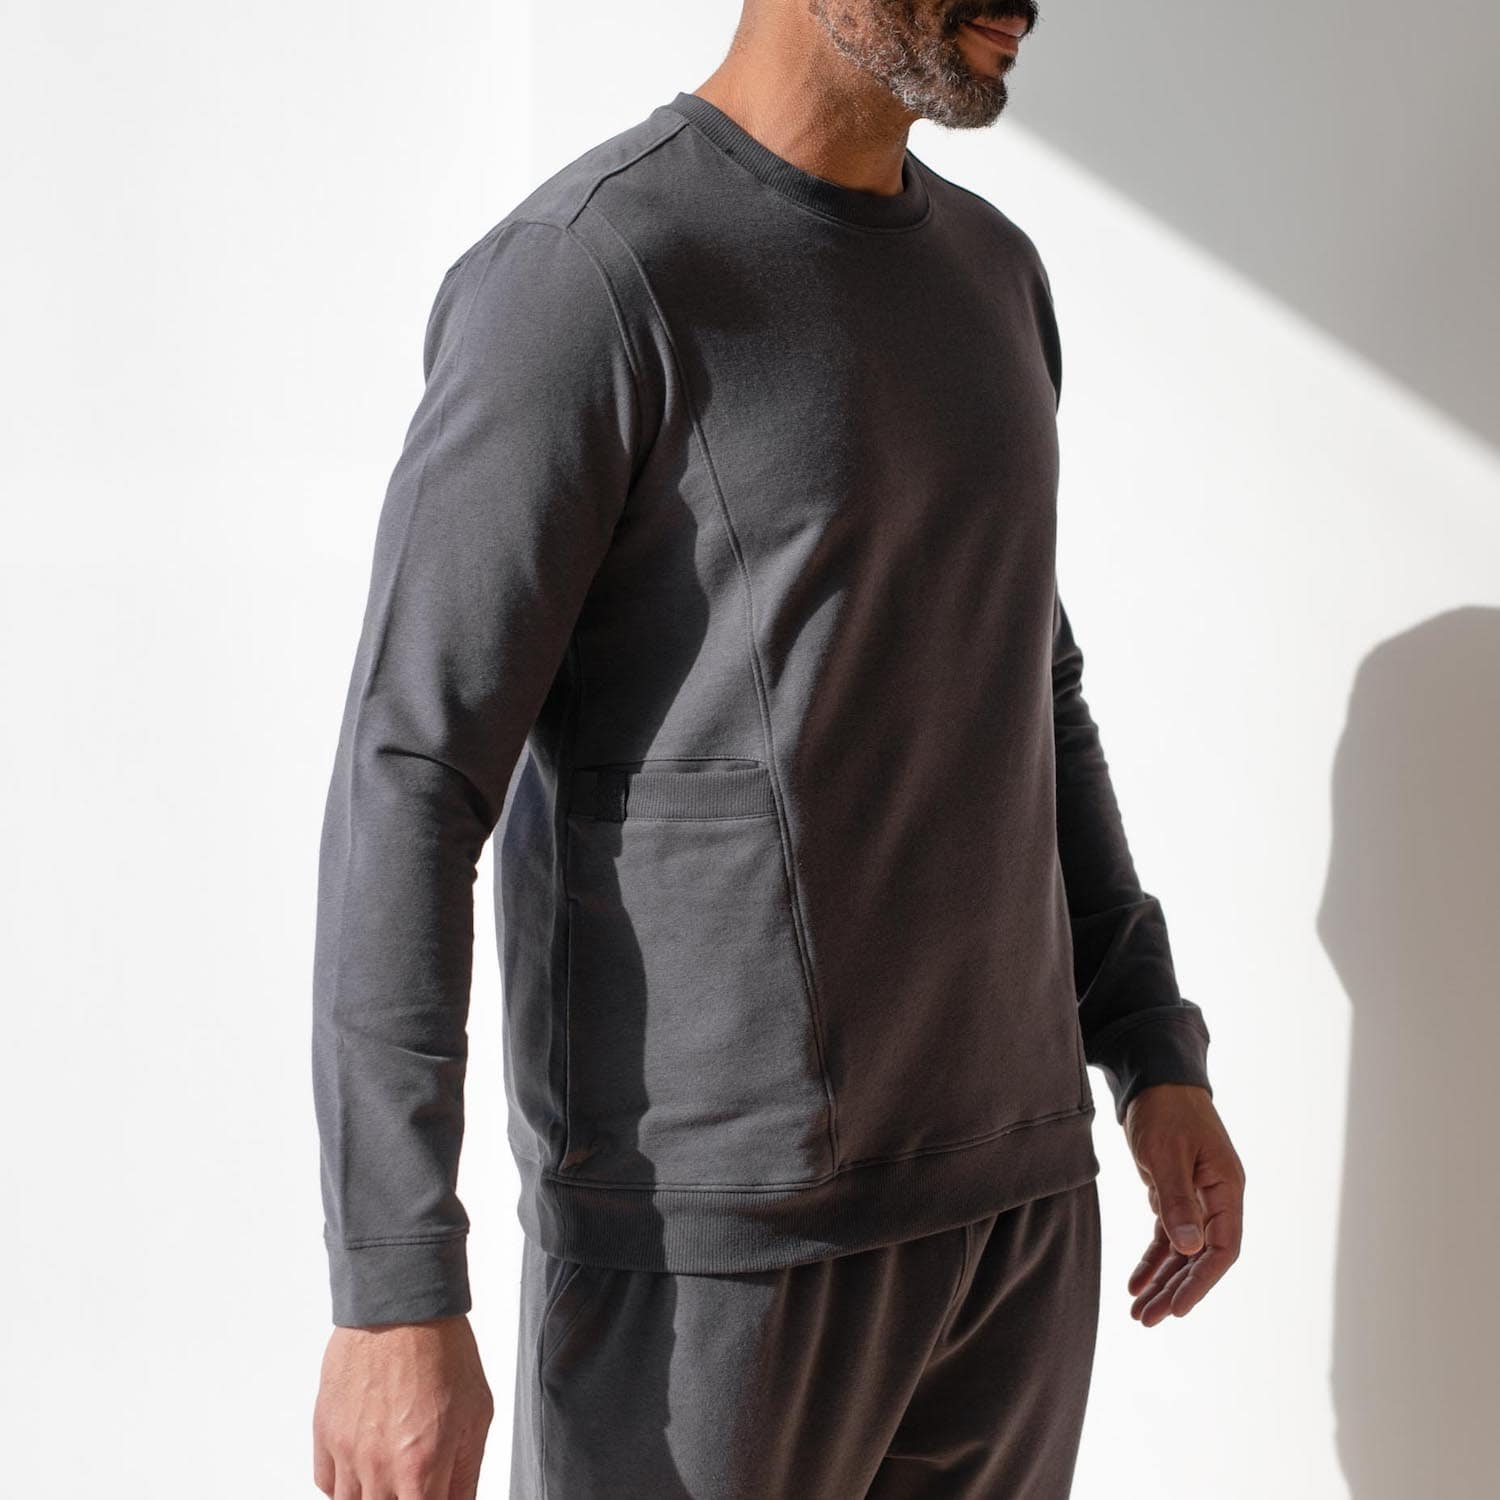 Lahgo Sleepwear Dreamy Wool Fleece Sweatshirt - #Eclipse